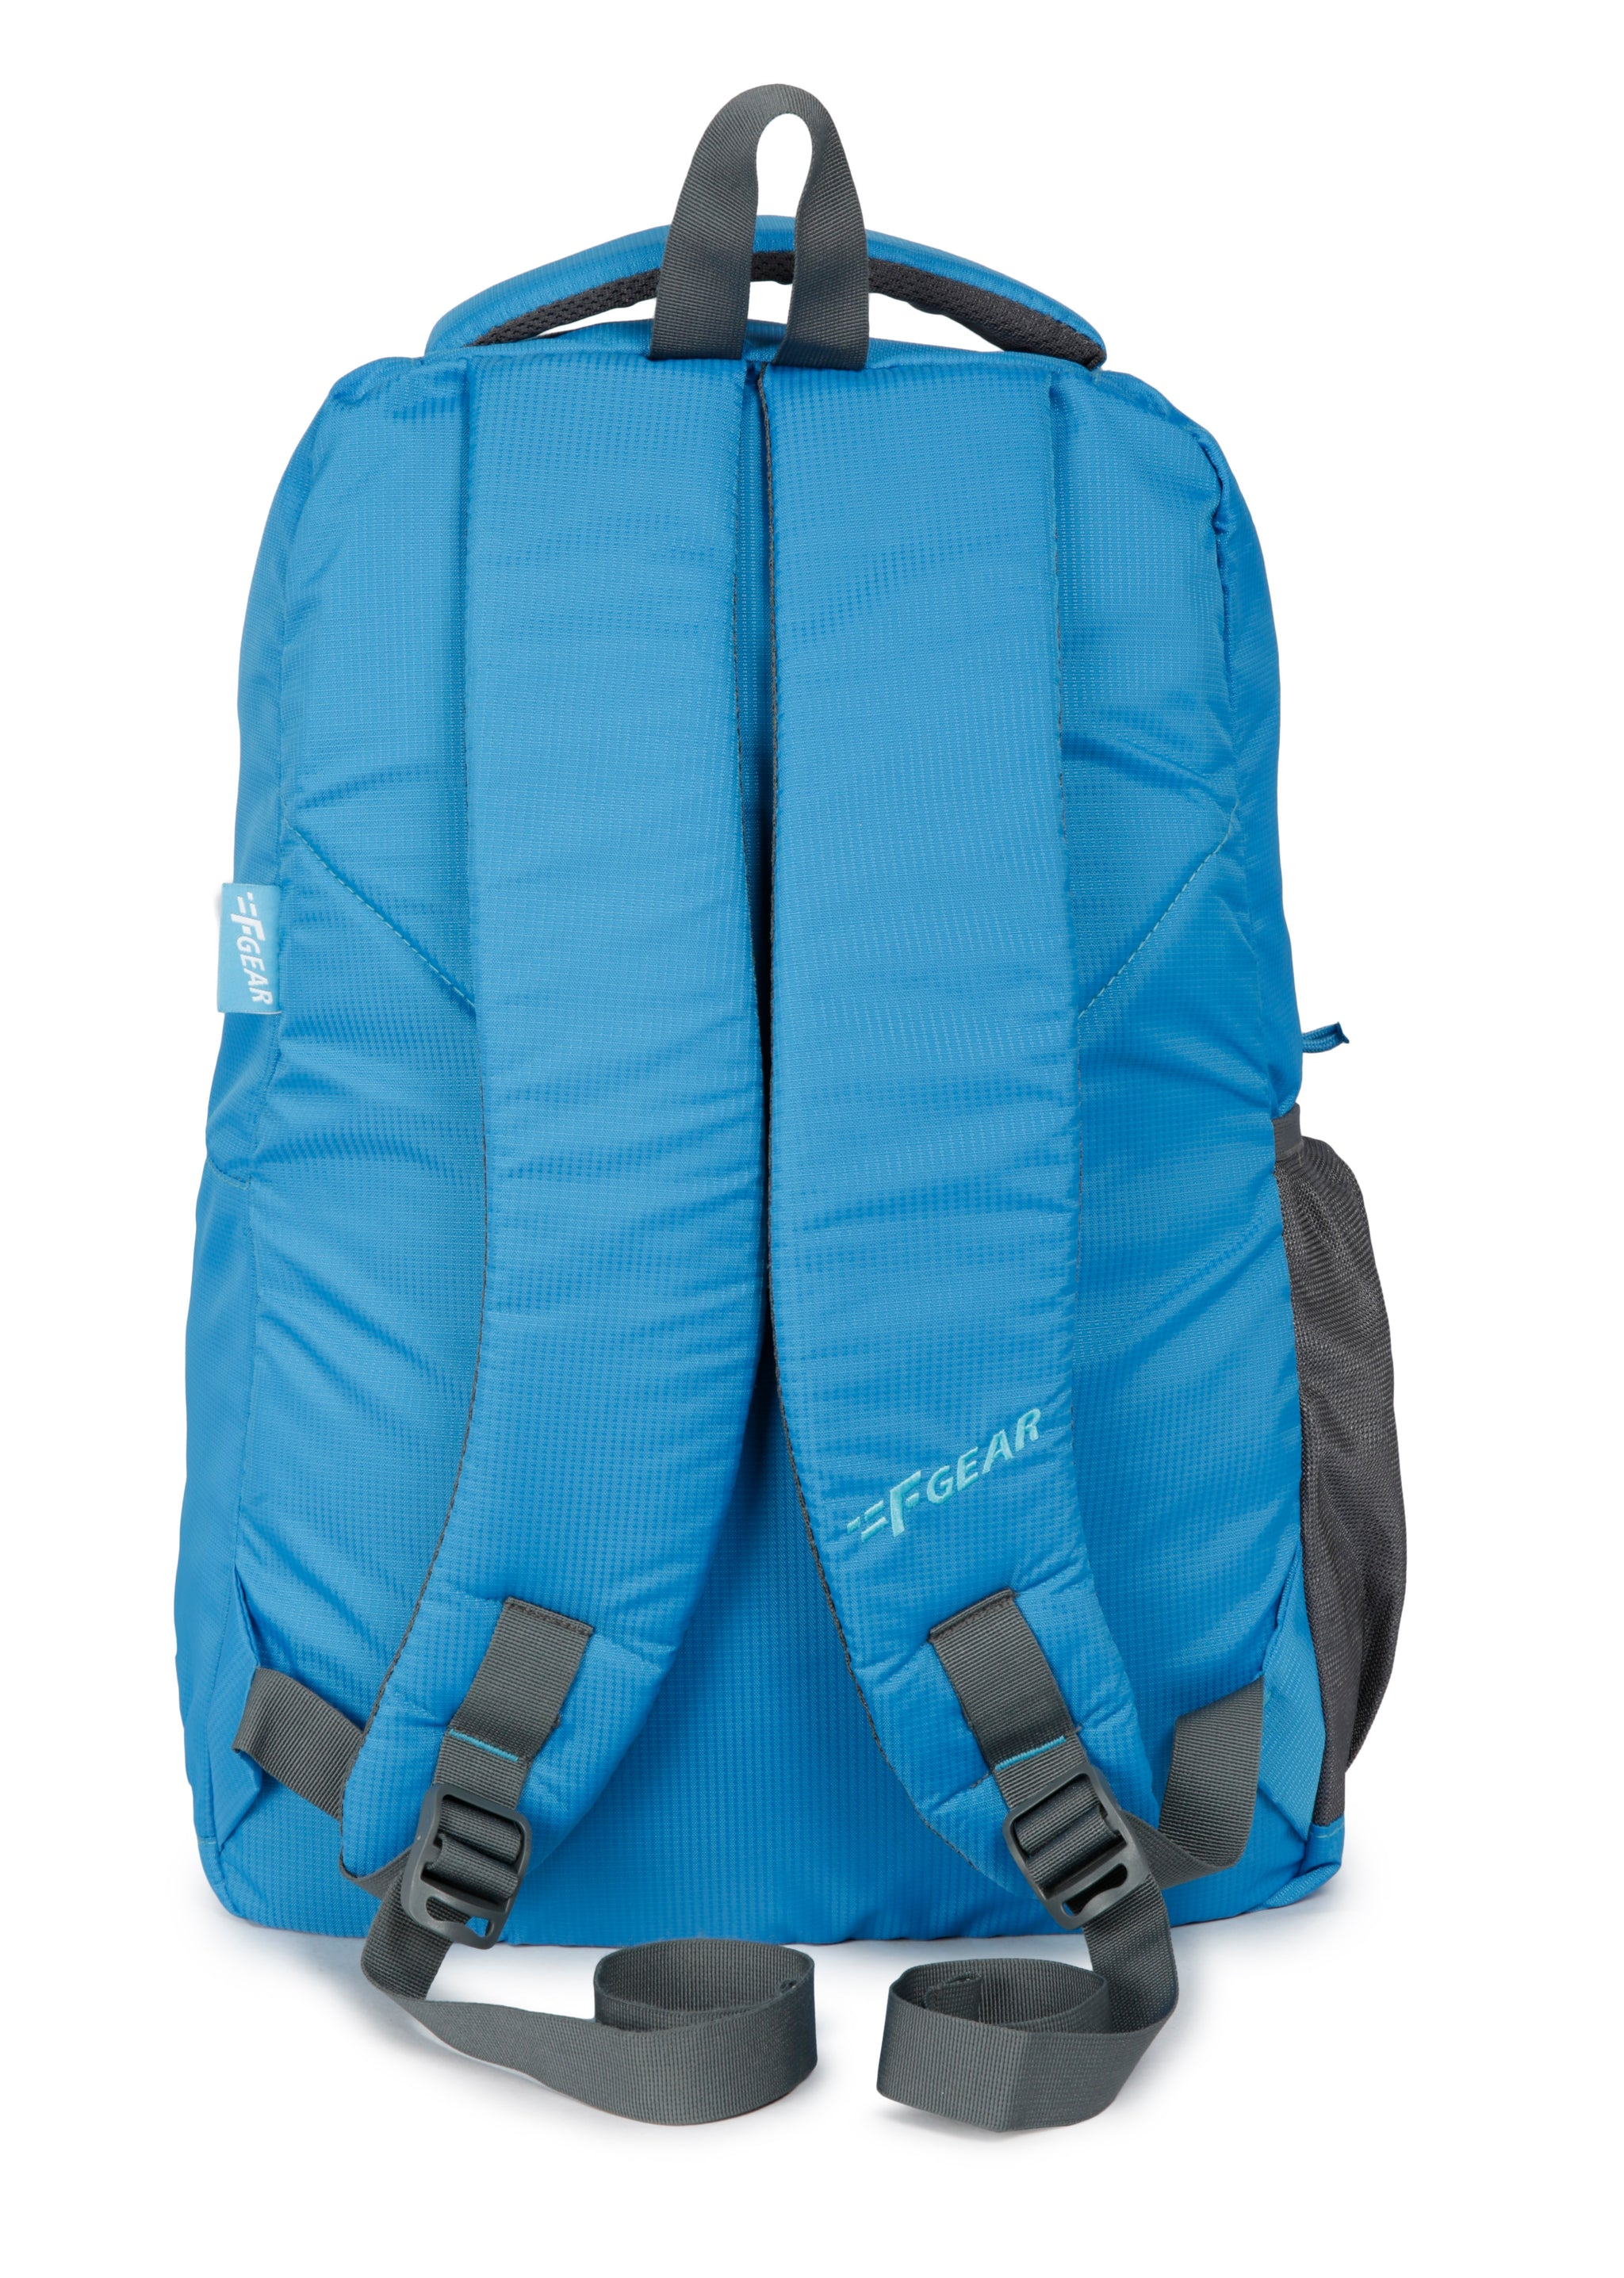 F Gear Murphy Doby 27 Ltrs Azure Blue Casual Backpack (3162)